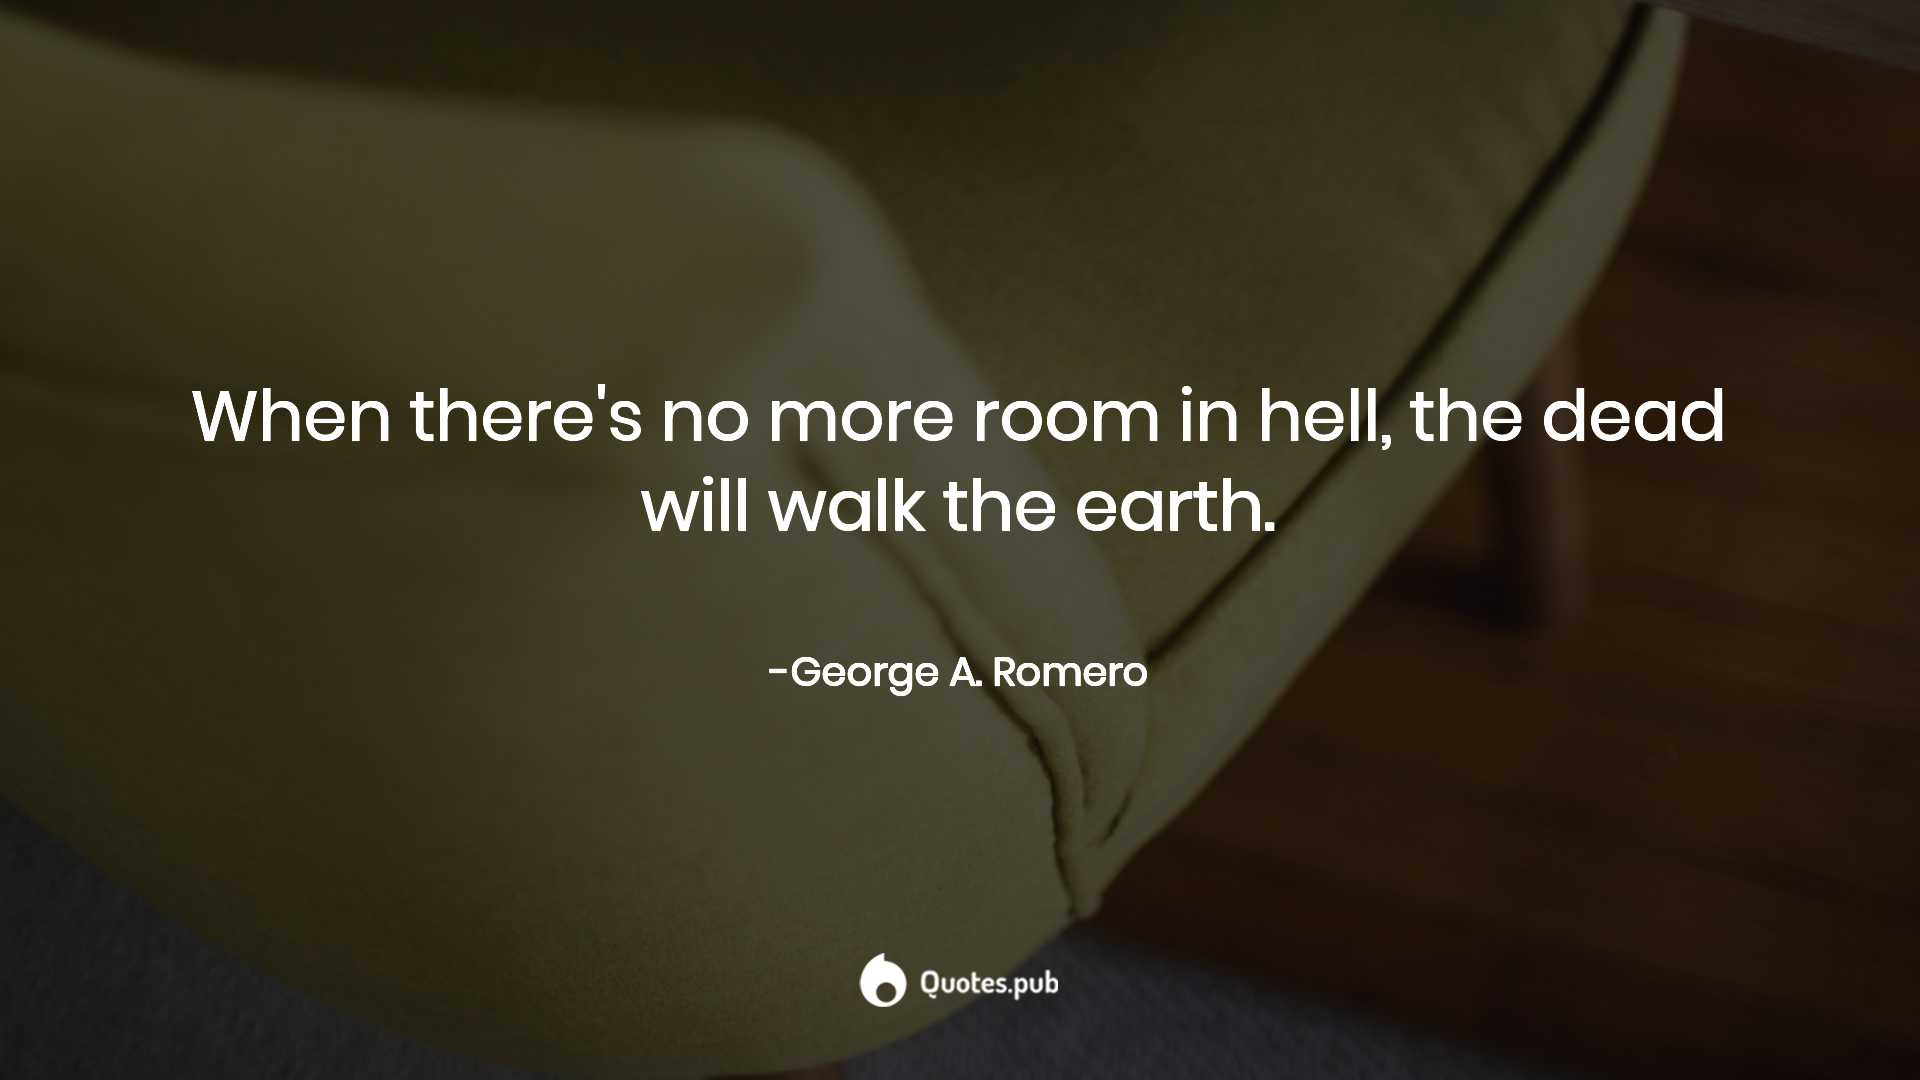 When There S No More Room In Hell George A Romero Quotes Pub